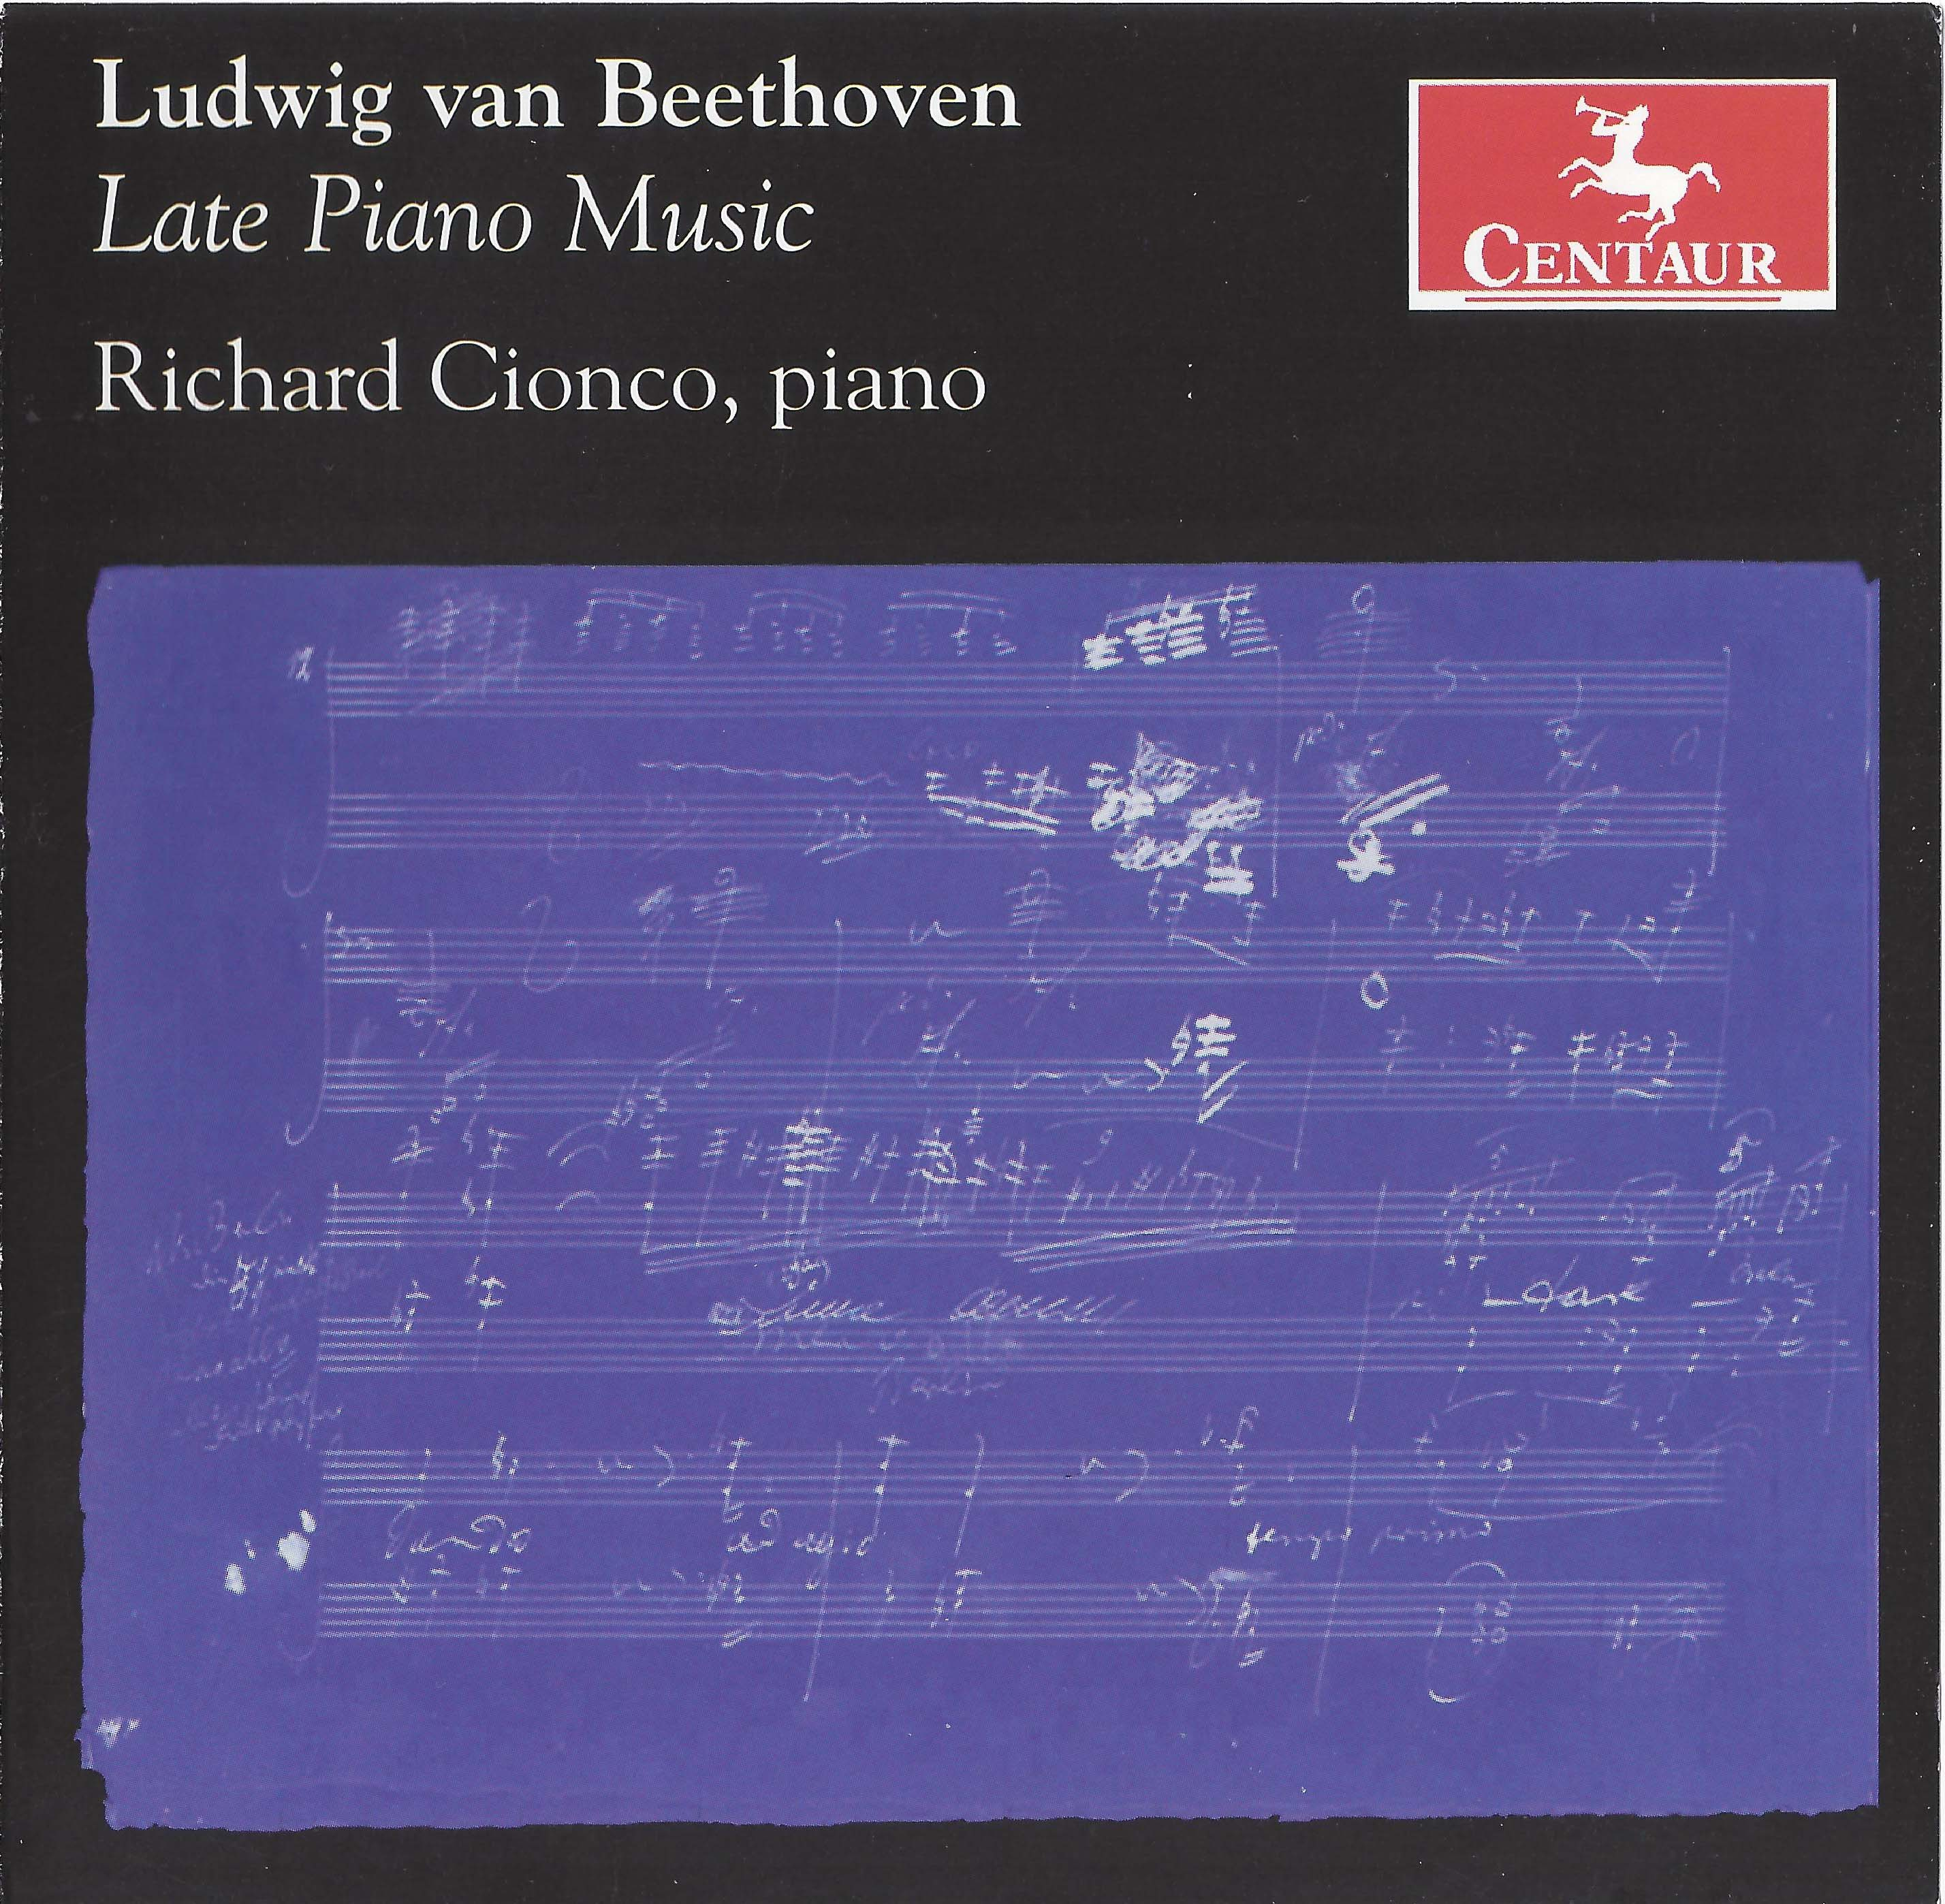 Ludwig van Beethoven: Late Piano Music